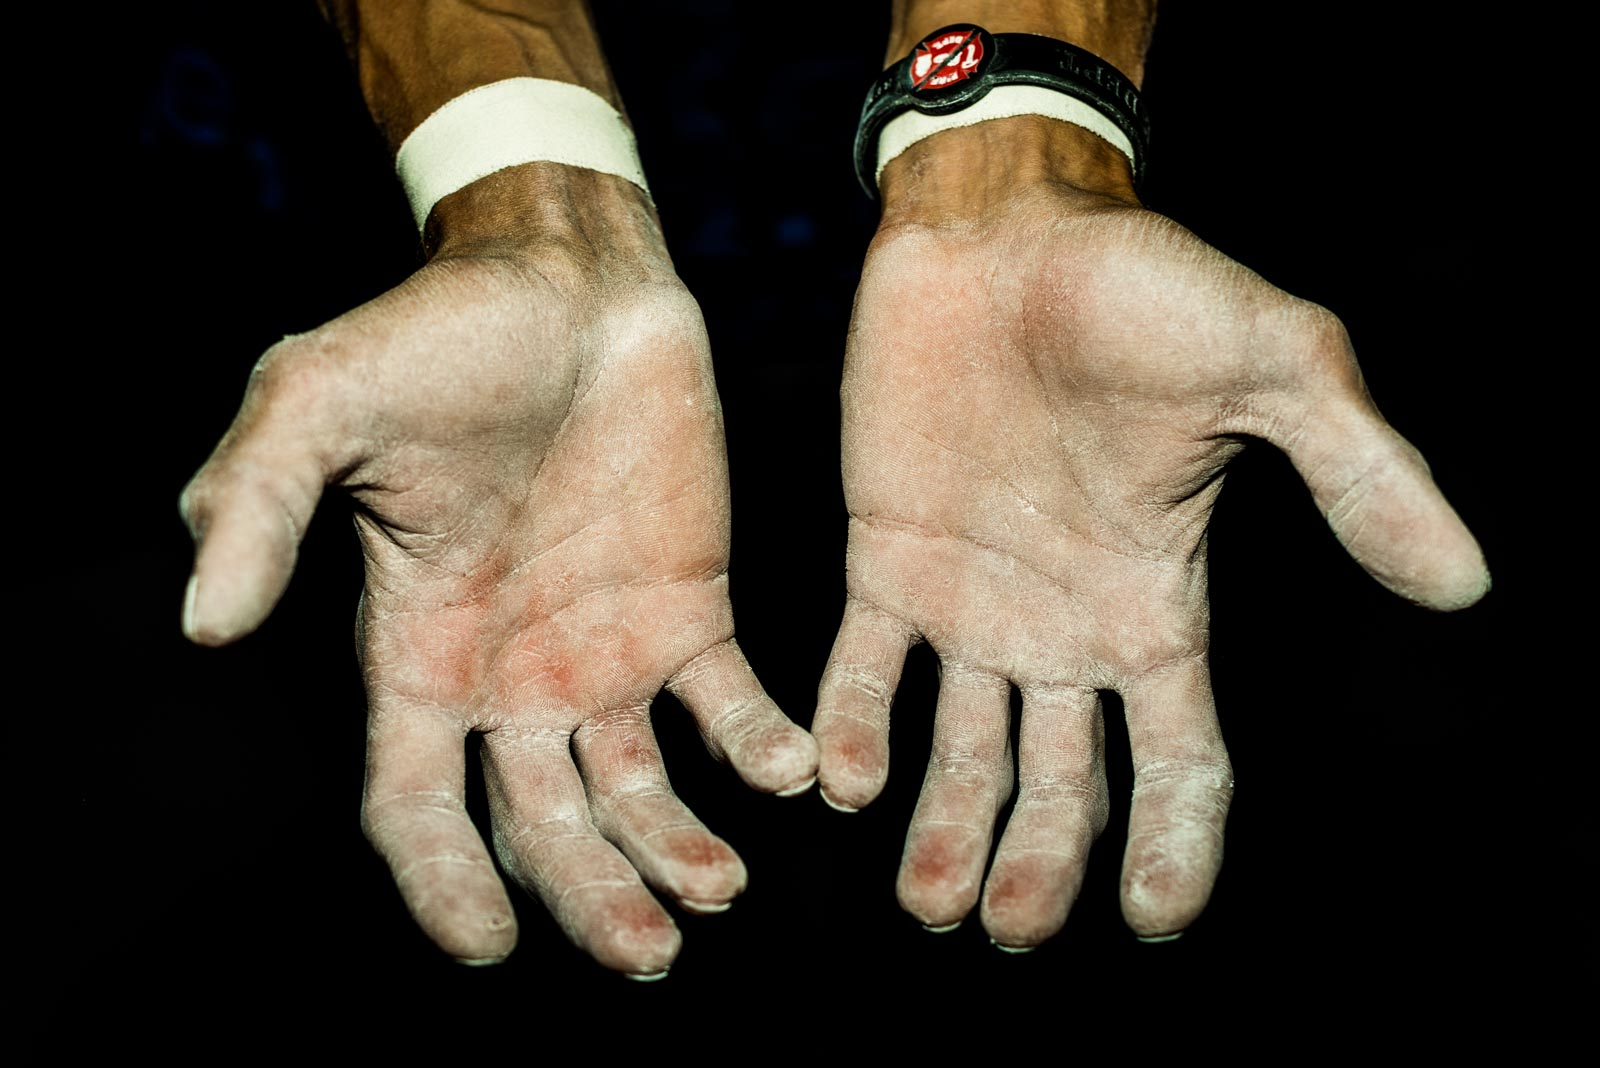 Hands of climber Rustam Gelmanov from Russia